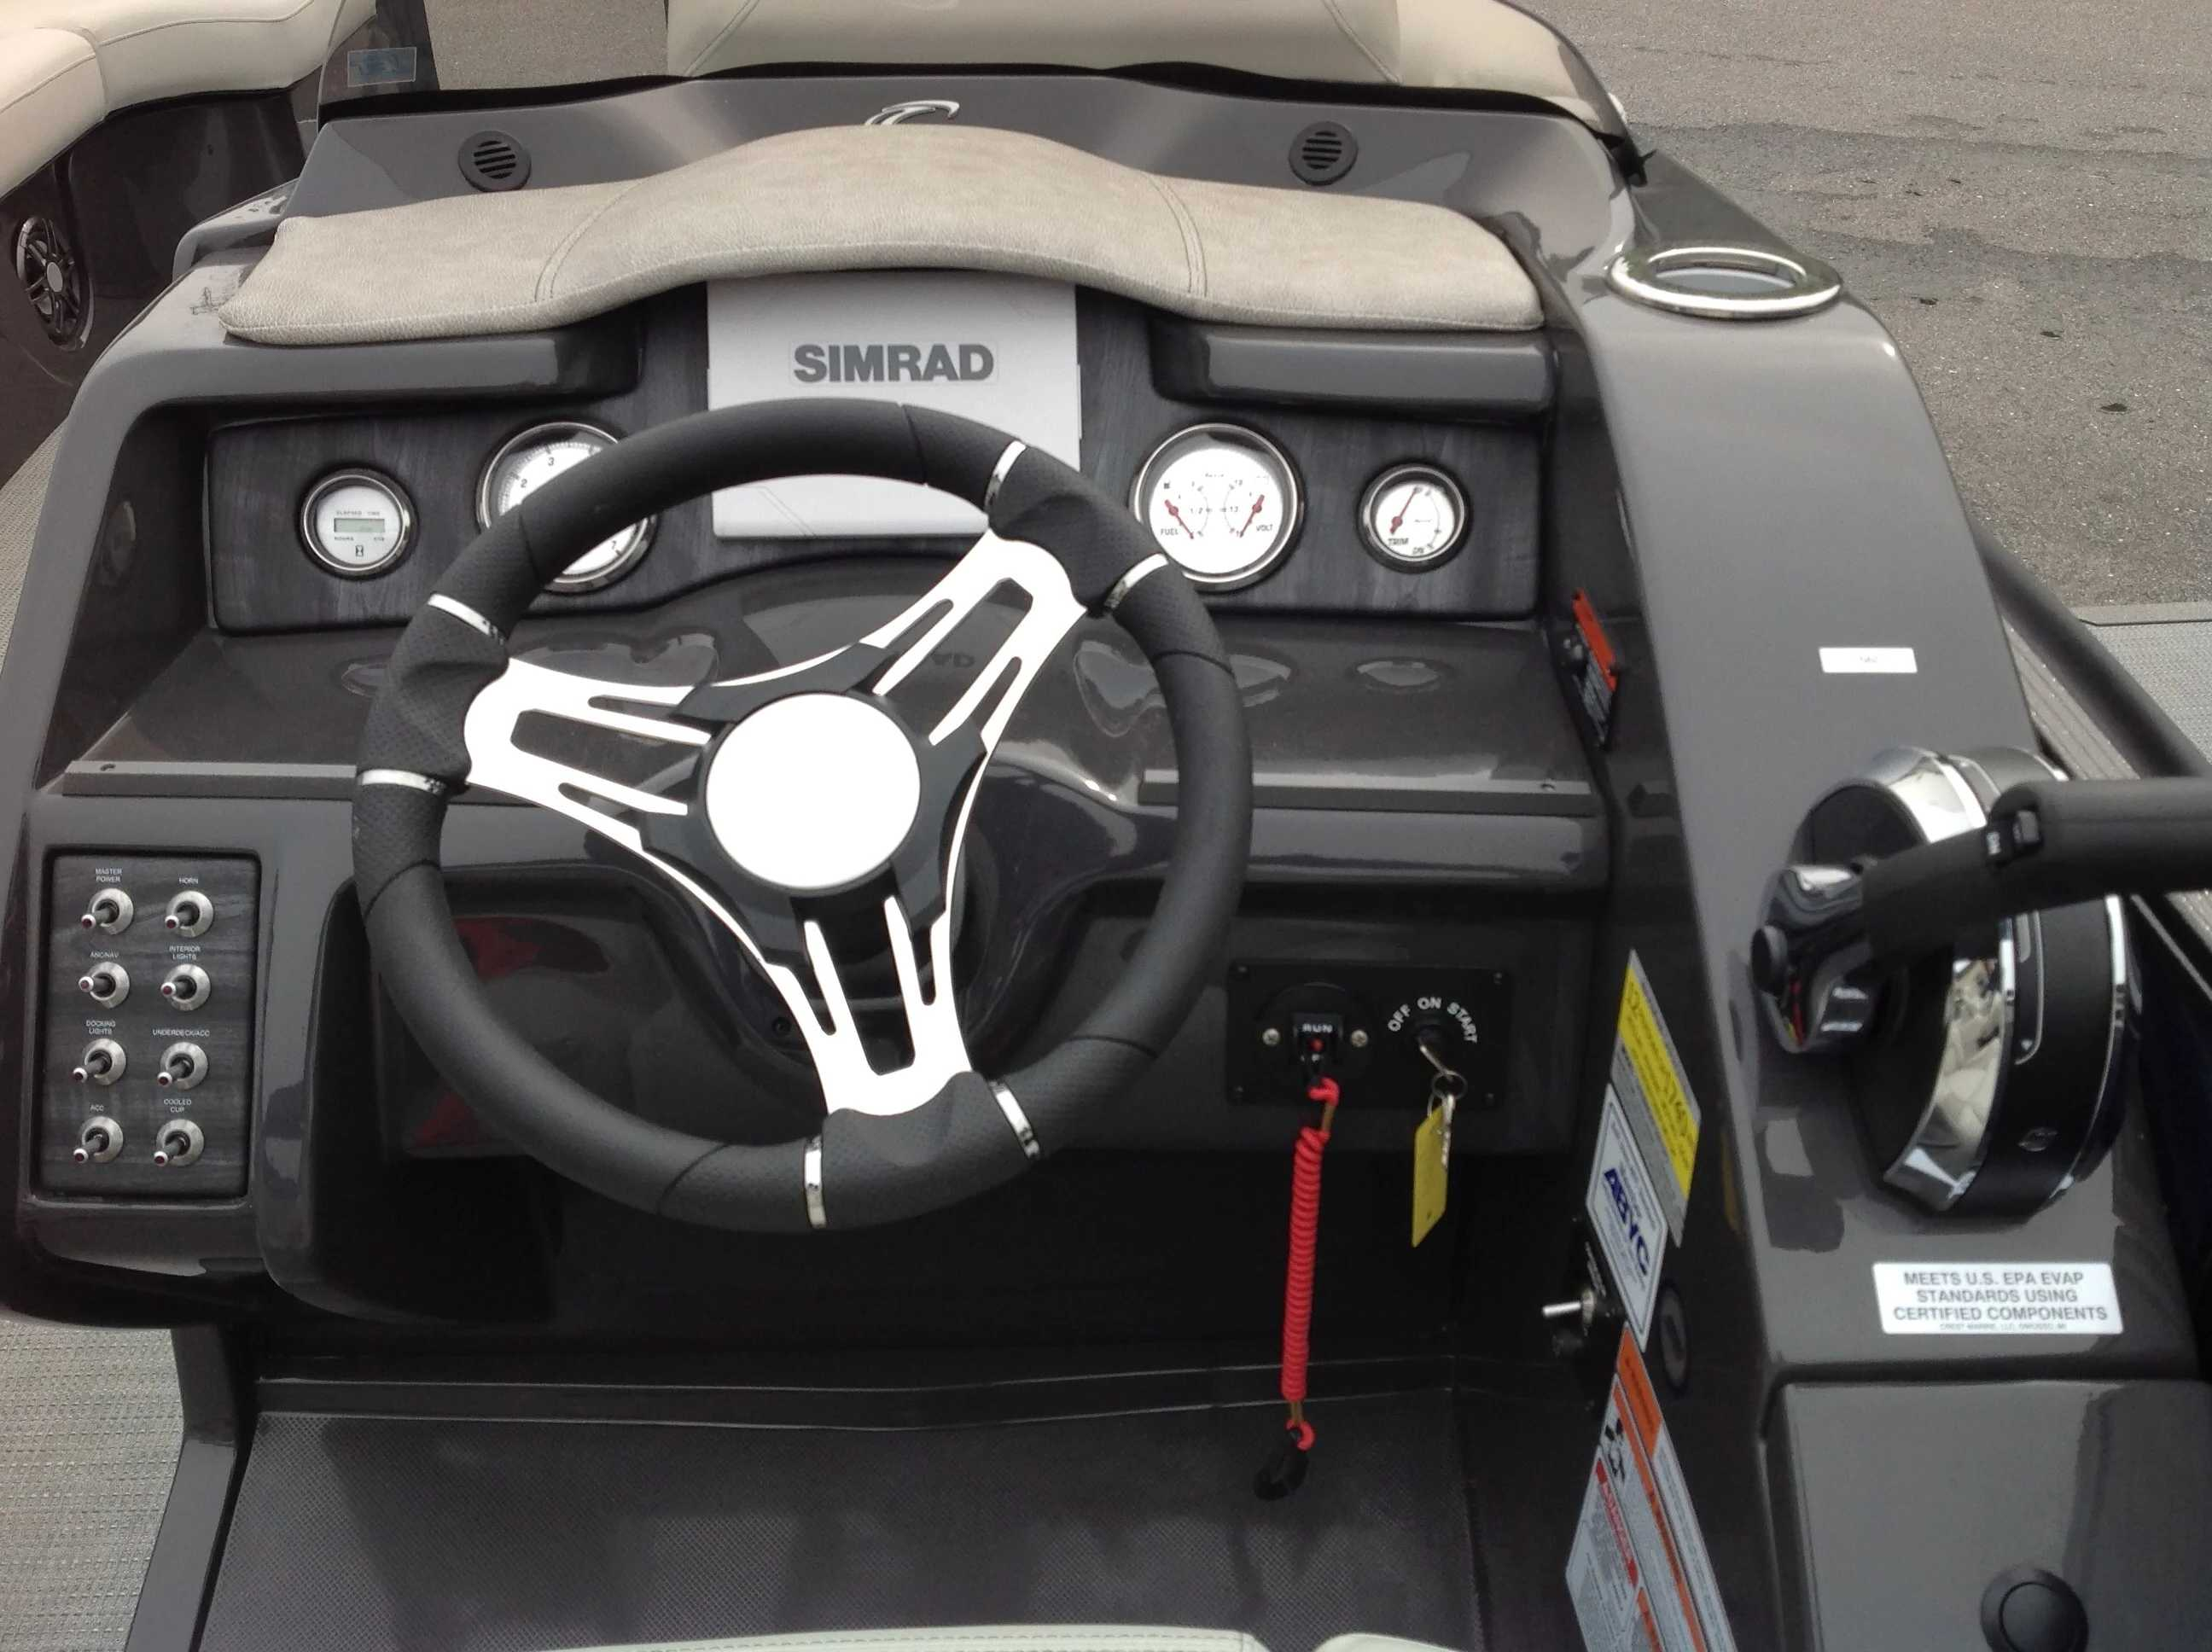 2020 Crest boat for sale, model of the boat is Caribbean Lx250 Slc & Image # 8 of 16